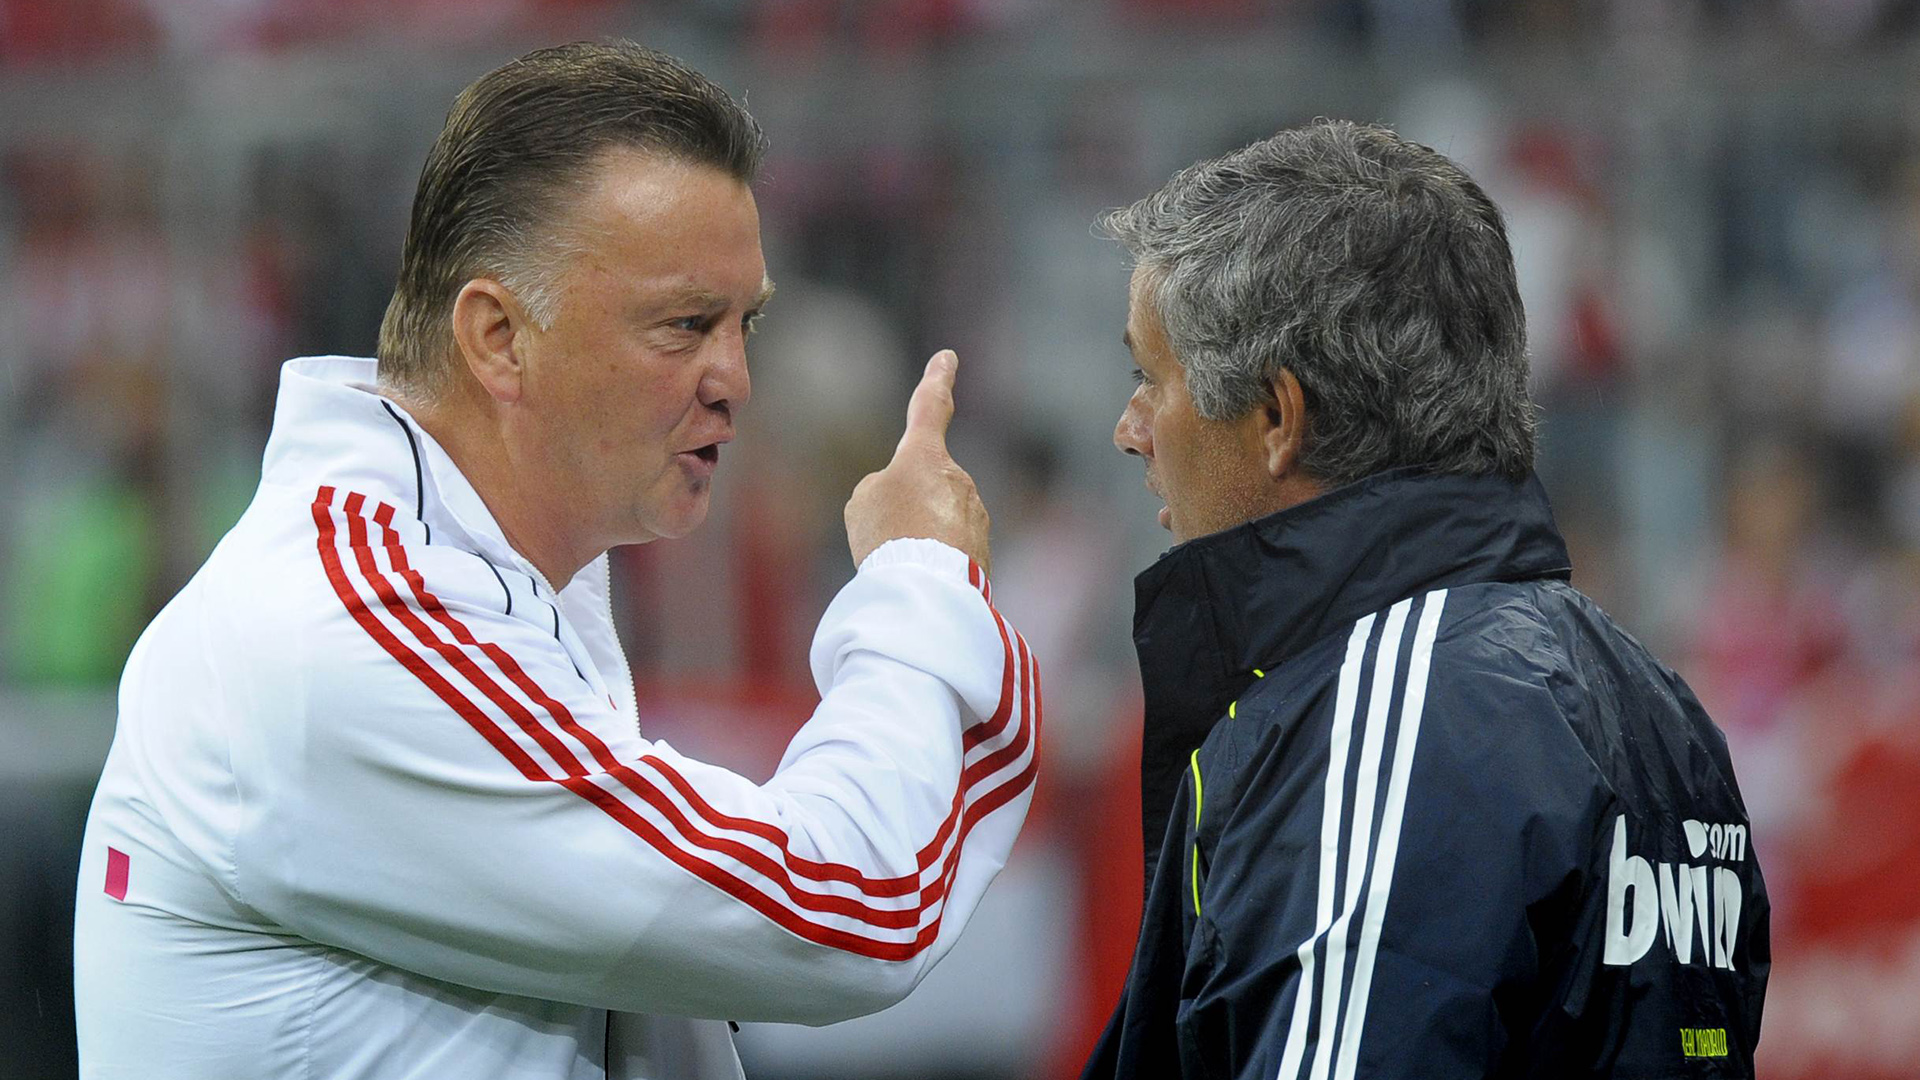 Louis van Gaal targets Manchester United revenge in final managerial hurrah